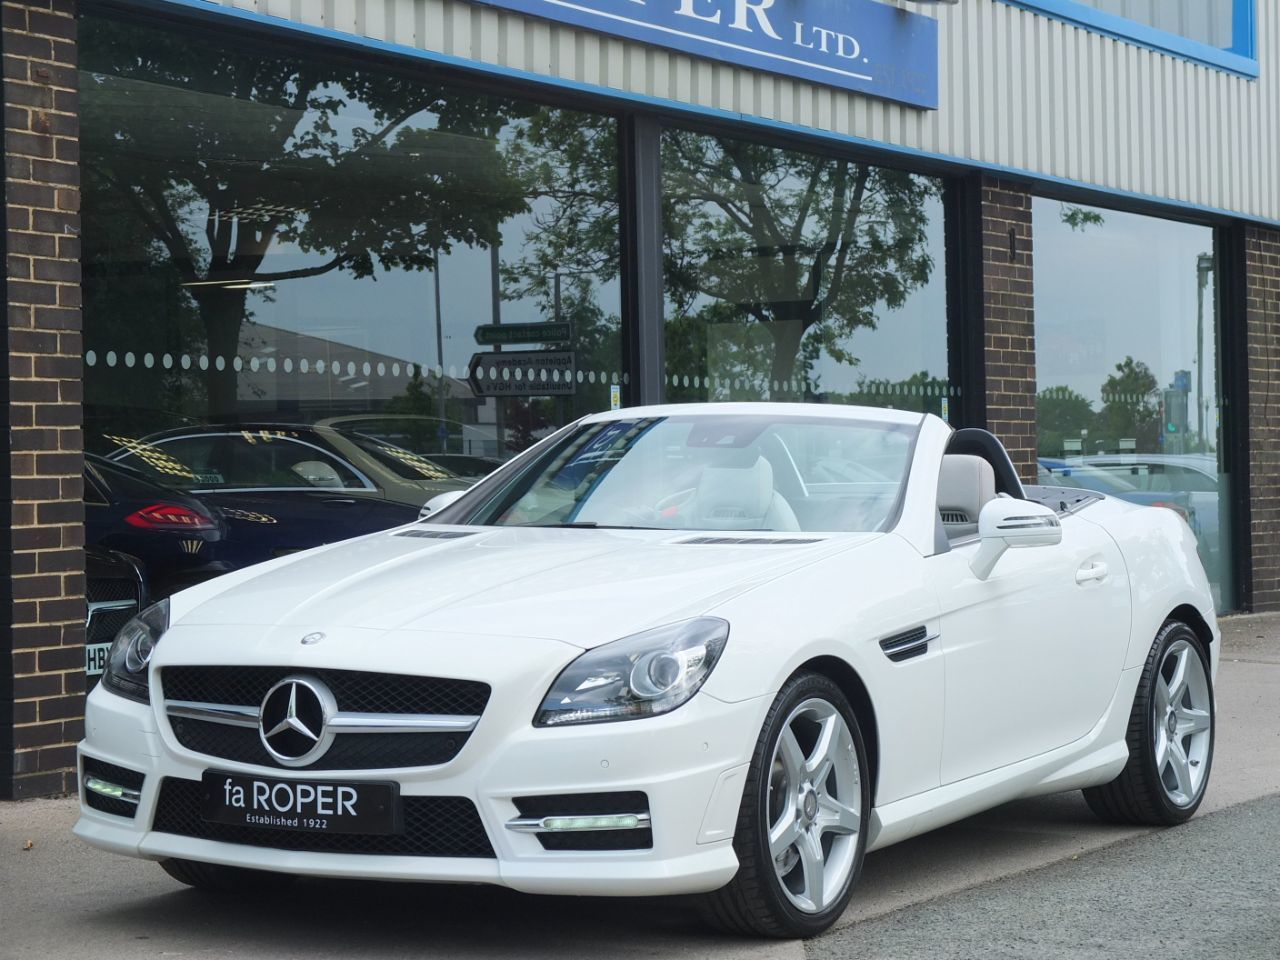 Mercedes-Benz SLK 2.1 SLK250 CDI BlueEfficiency AMG Sport Auto Convertible Diesel Polar WhiteMercedes-Benz SLK 2.1 SLK250 CDI BlueEfficiency AMG Sport Auto Convertible Diesel Polar White at fa Roper Ltd Bradford